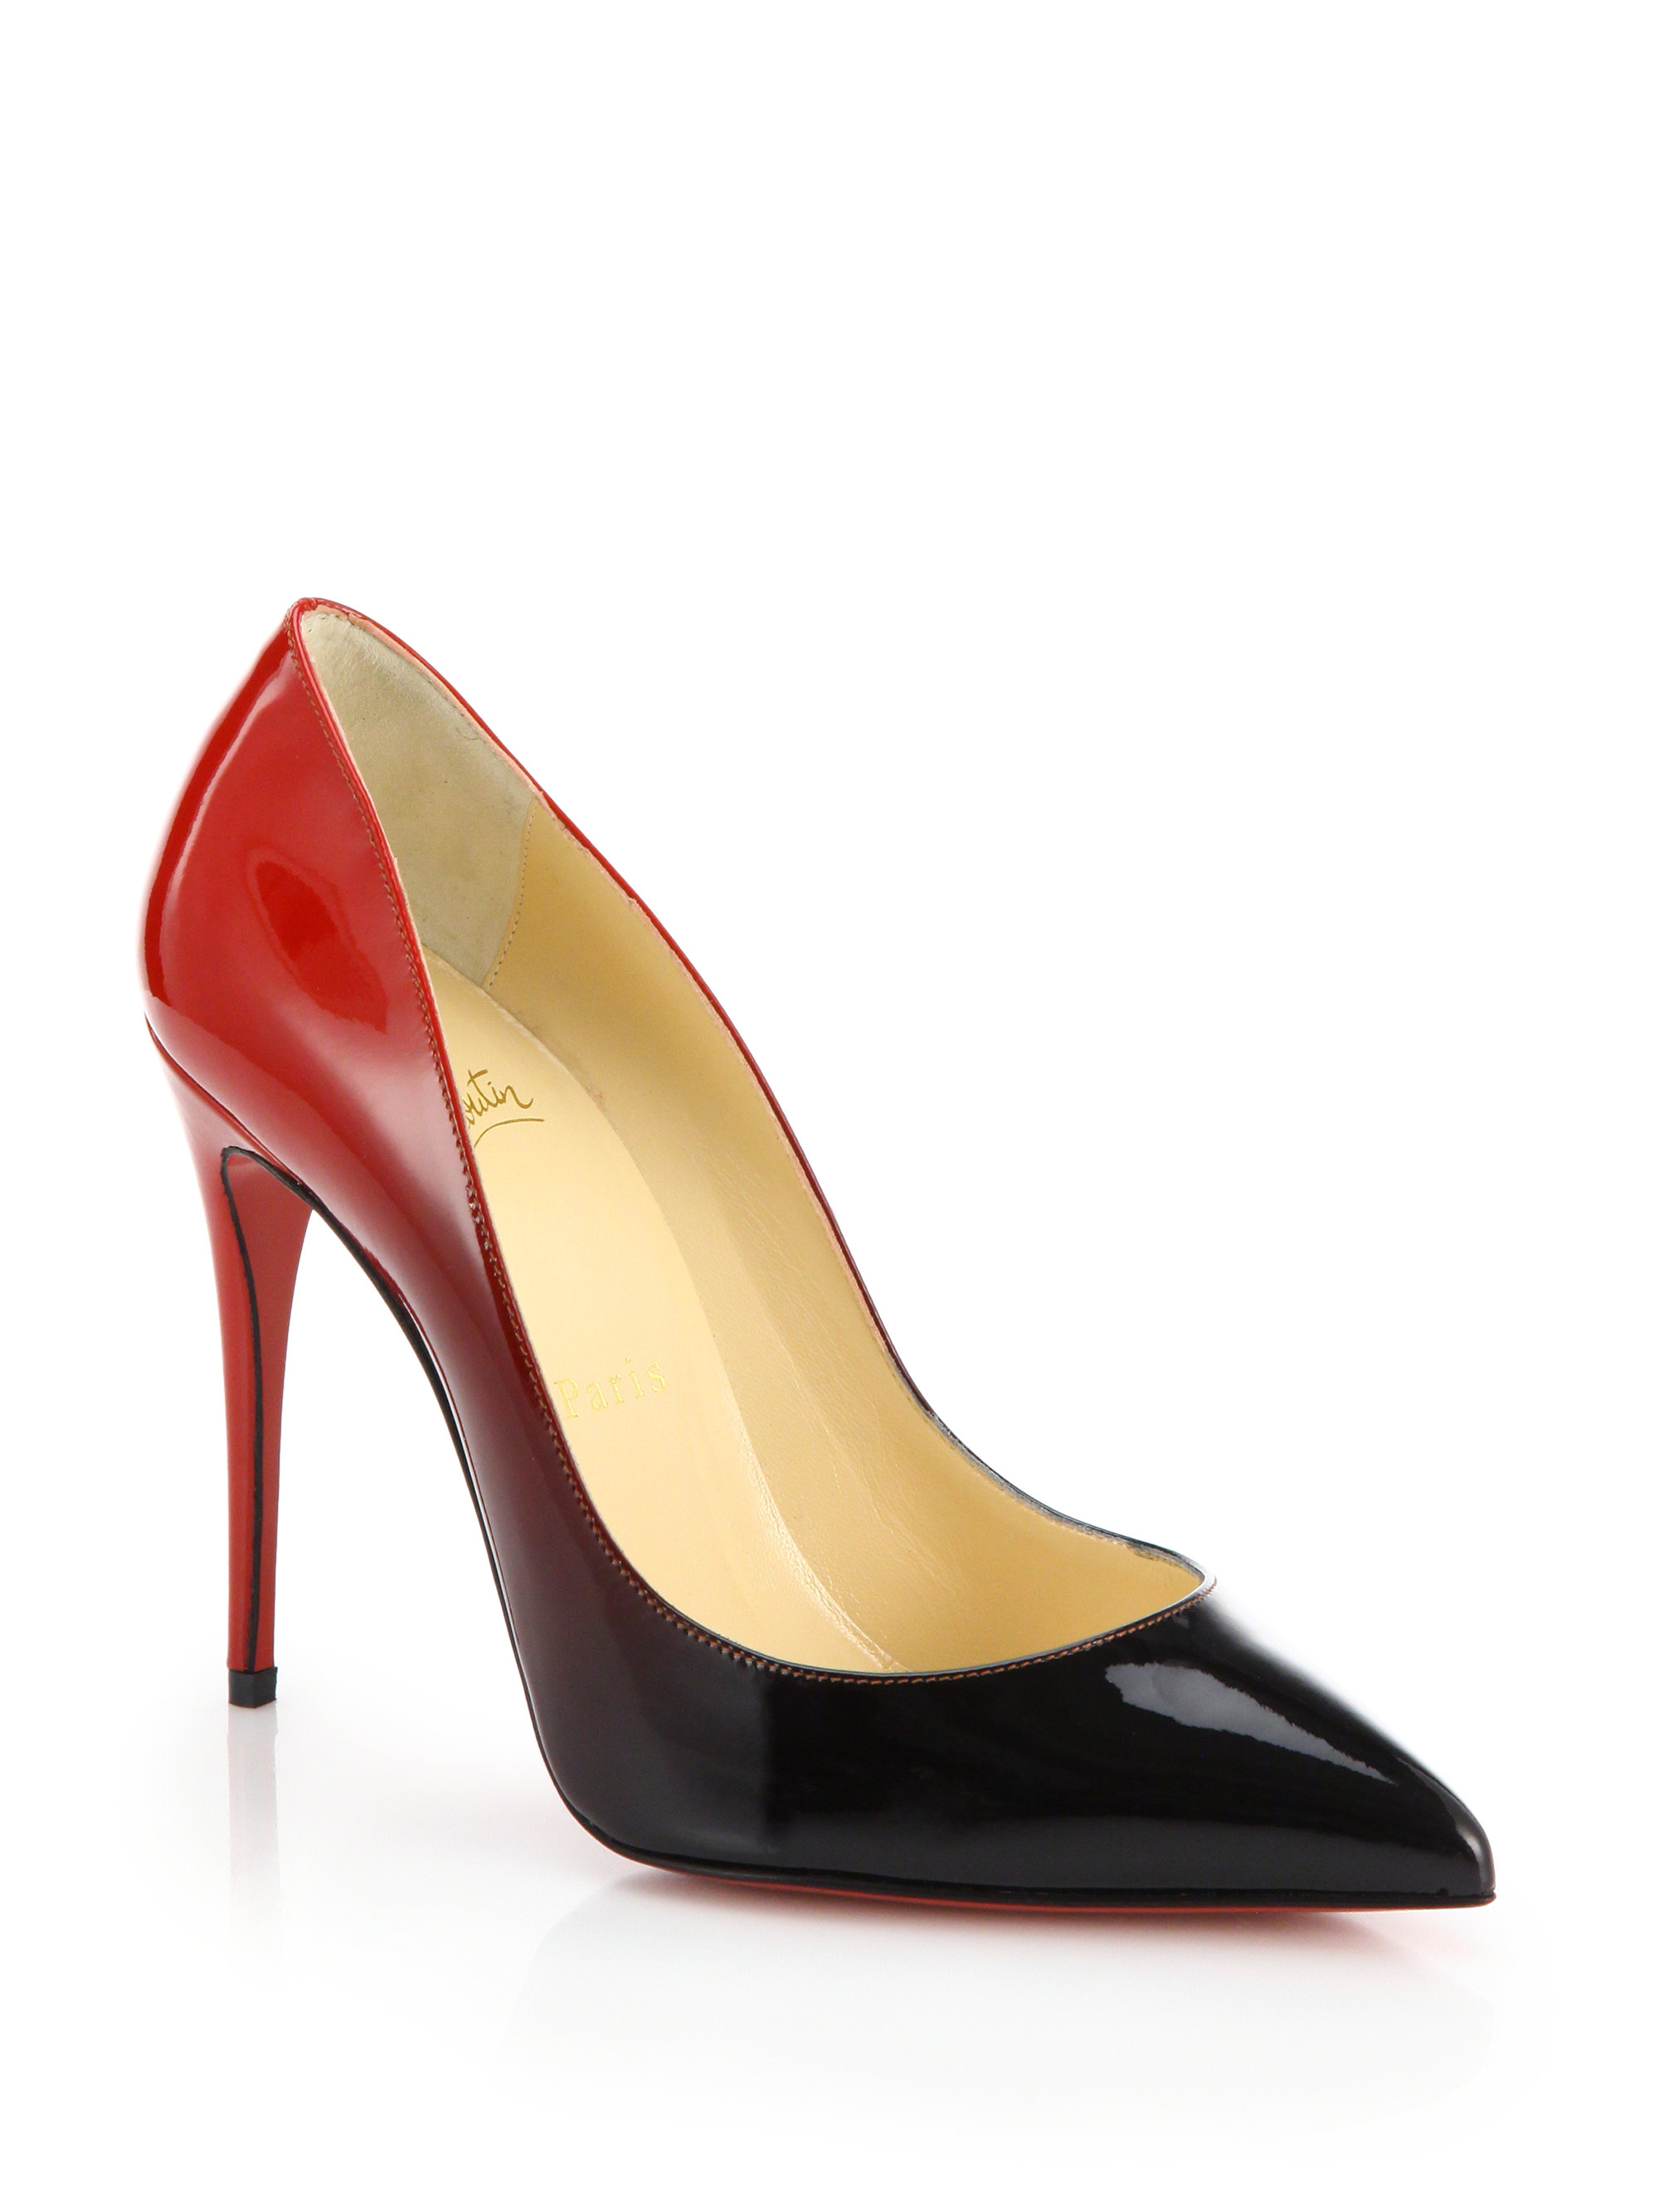 Patent Leather Pumps in Black-Red